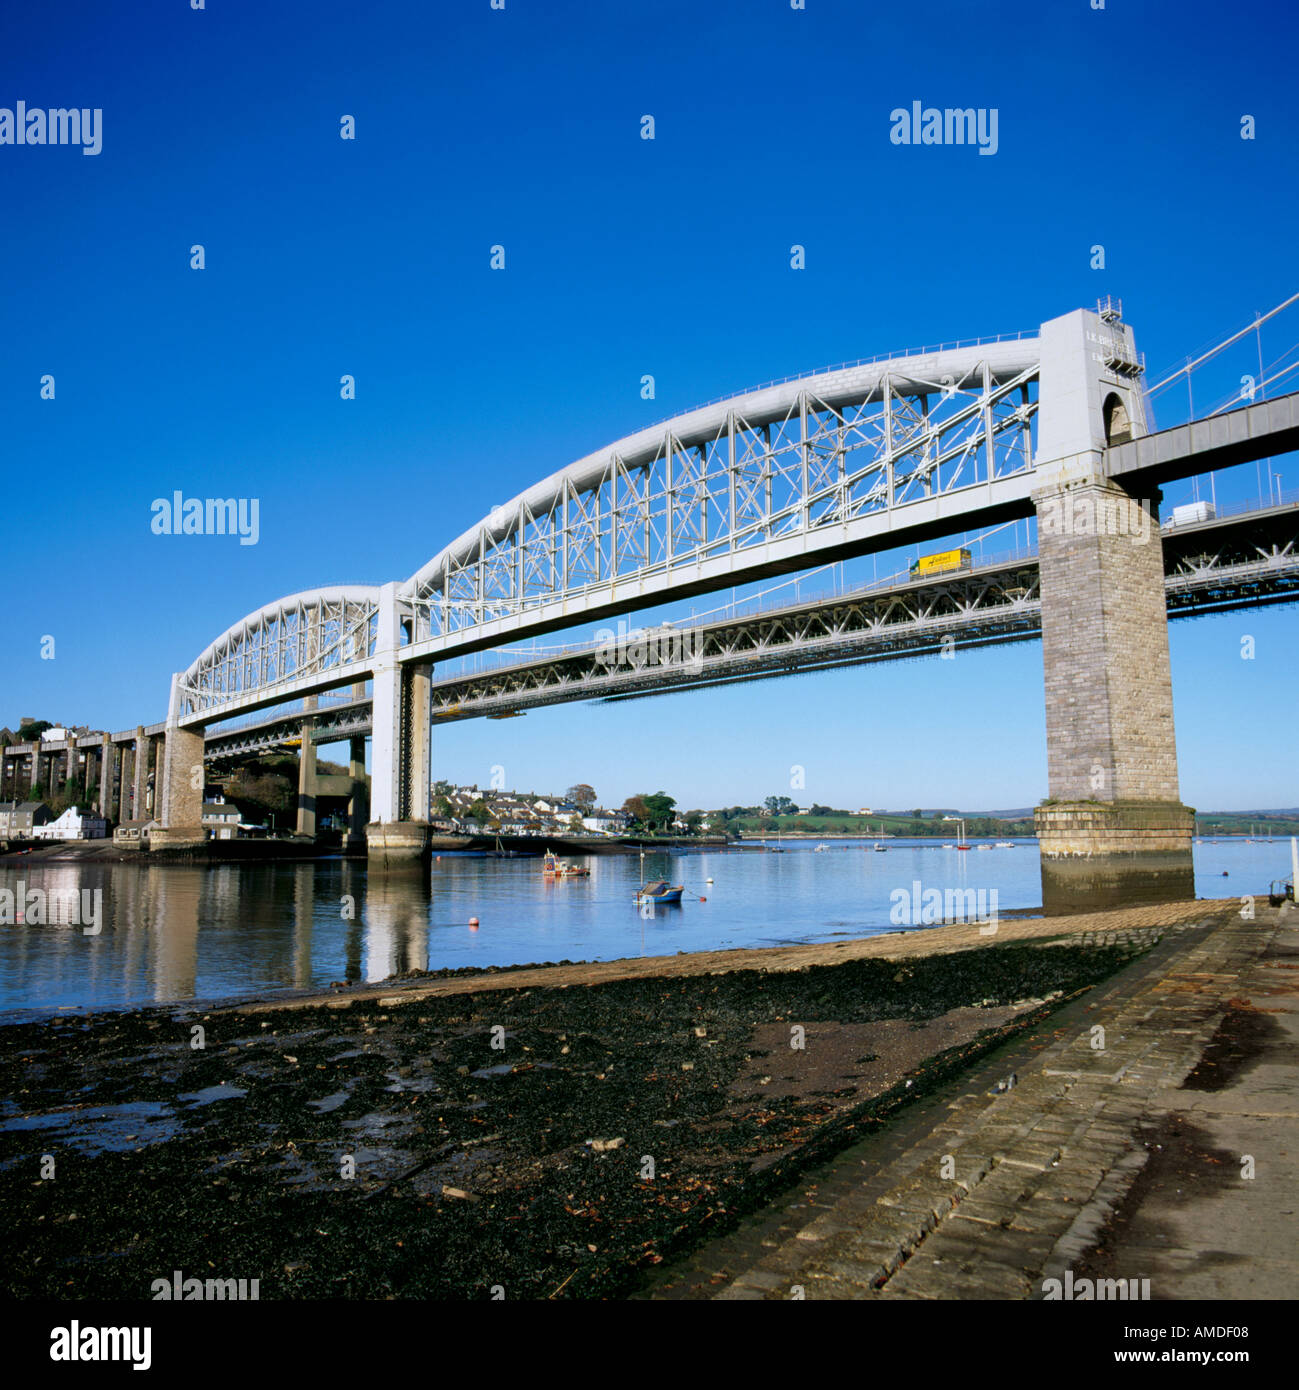 Rail and road bridges over the River Tamar between Devon and Cornwall, from the Plymouth shore, England, UK. - Stock Image